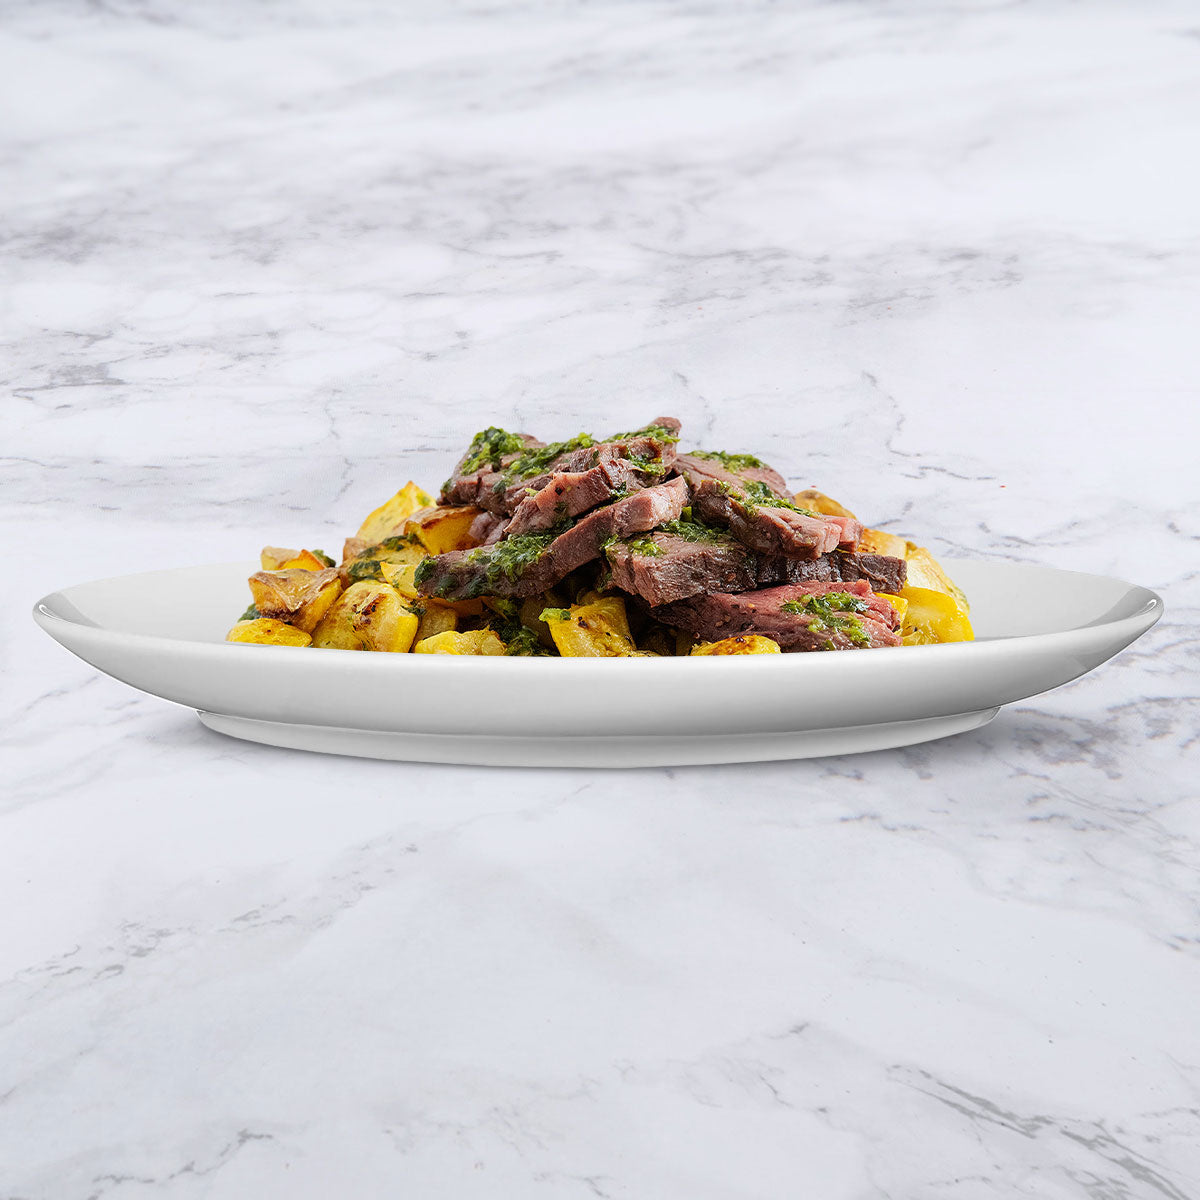 Chimichurri Beef with Roasted Potatoes and Yellow Squash